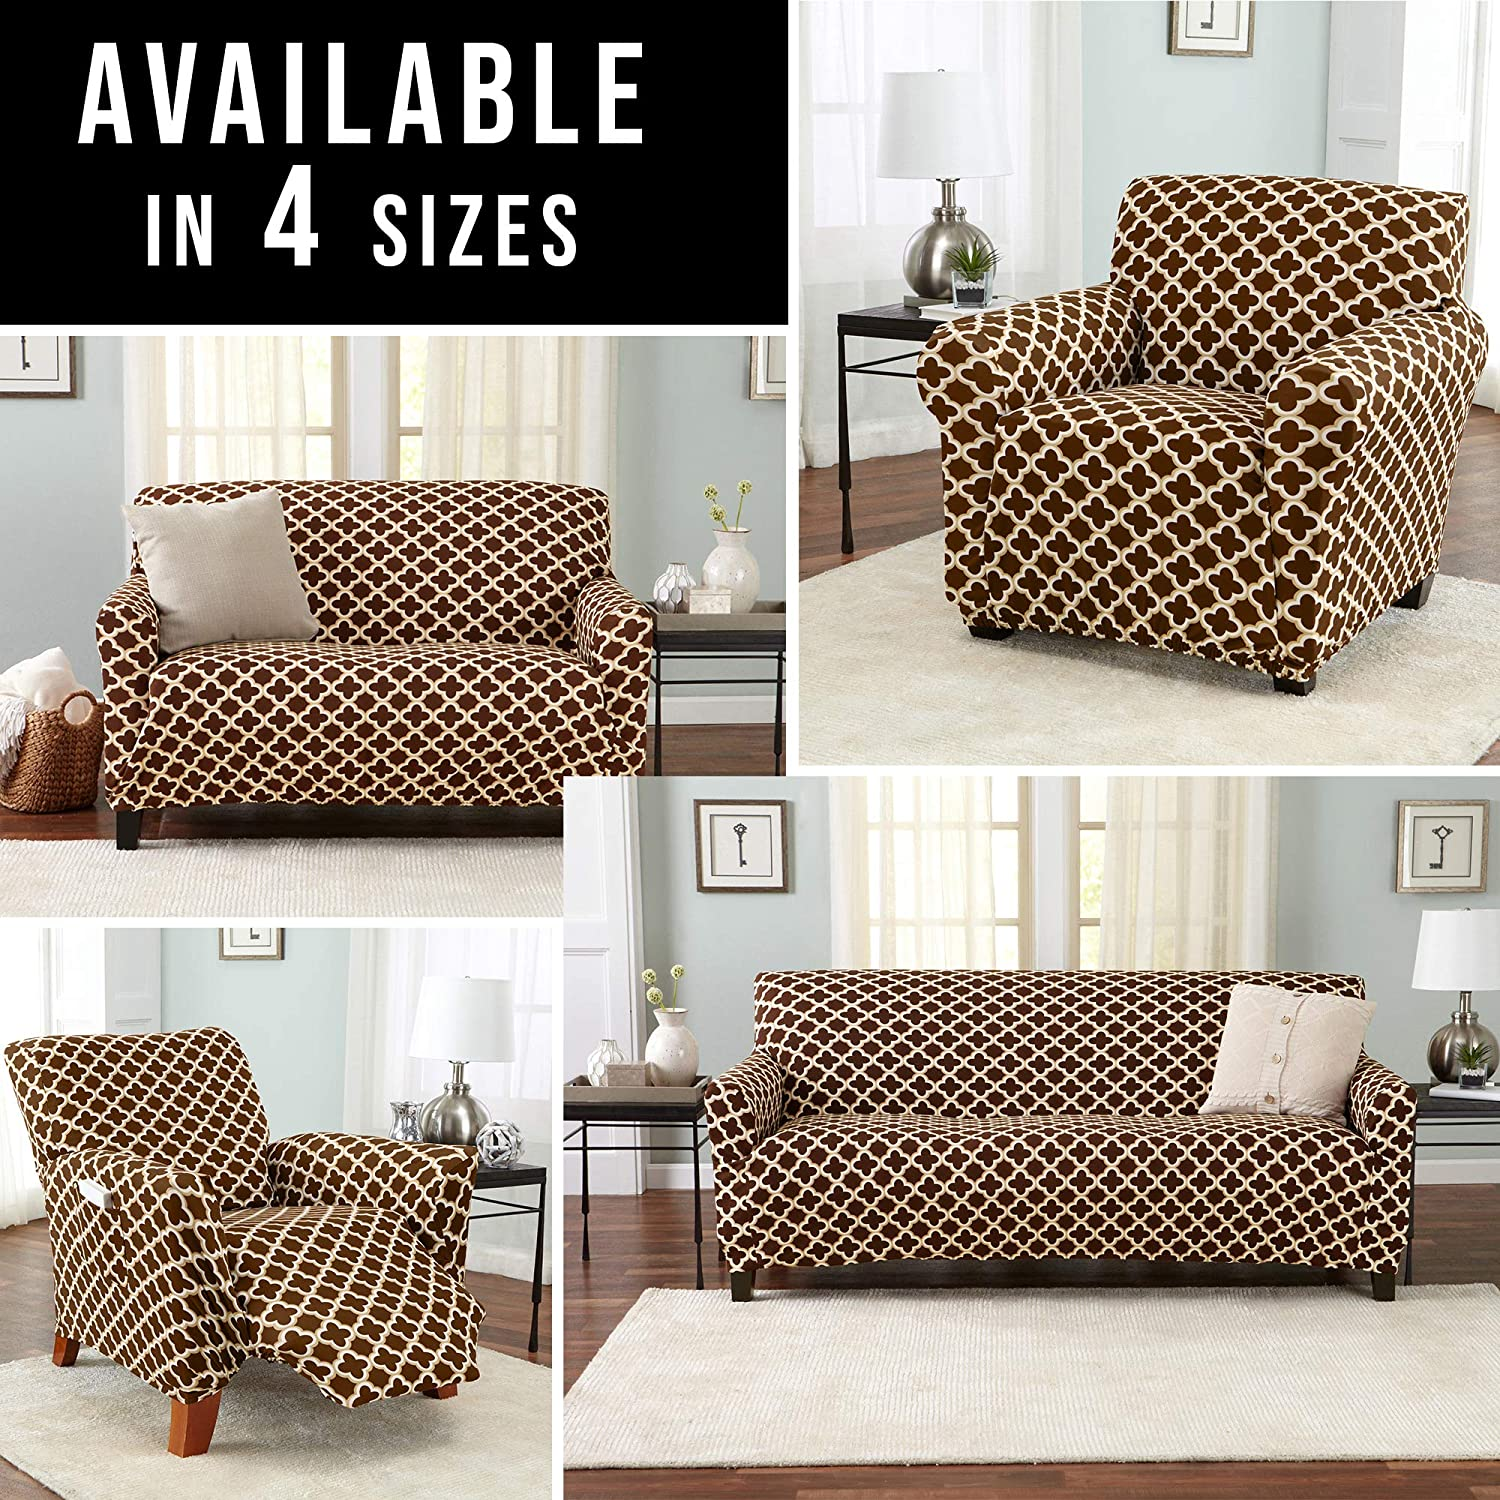 Home Fashion Designs Printed Twill Love Seat Slipcover Brenna Collection Slipcover./ Love Seat, Beige Strapless Love Seat Cover for Living Room One Piece Stretch Loveseat Cover